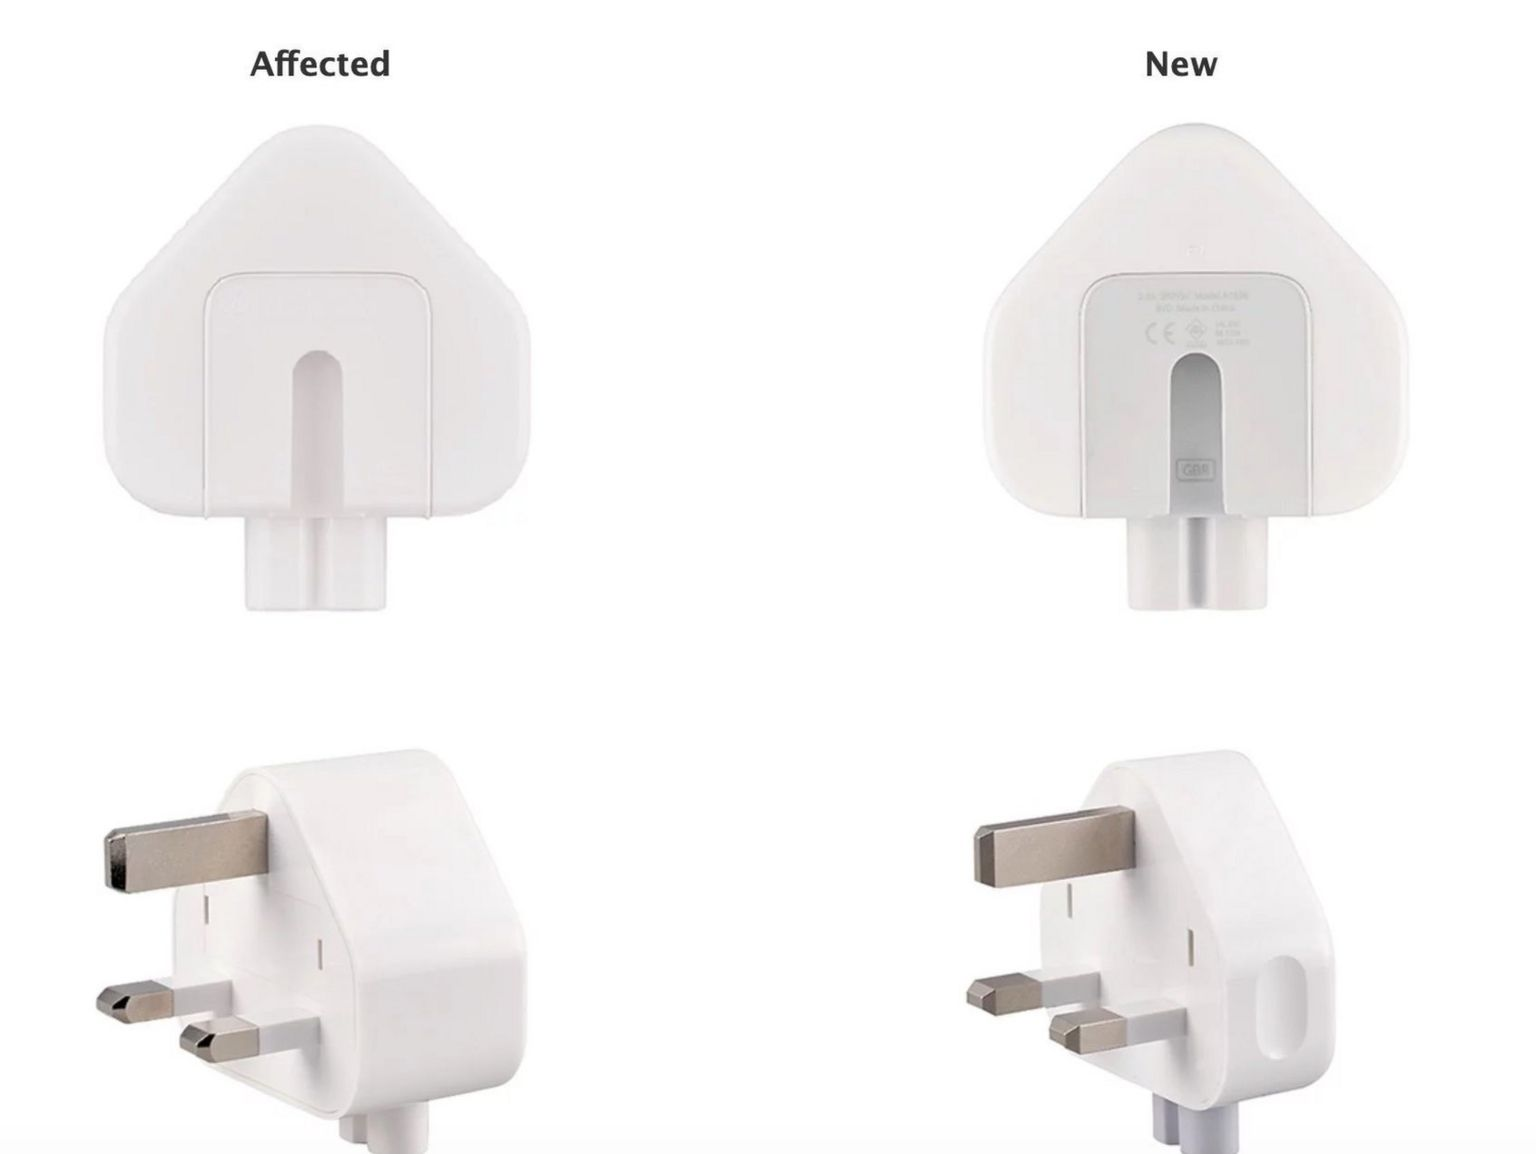 Graphic showing affected plugs